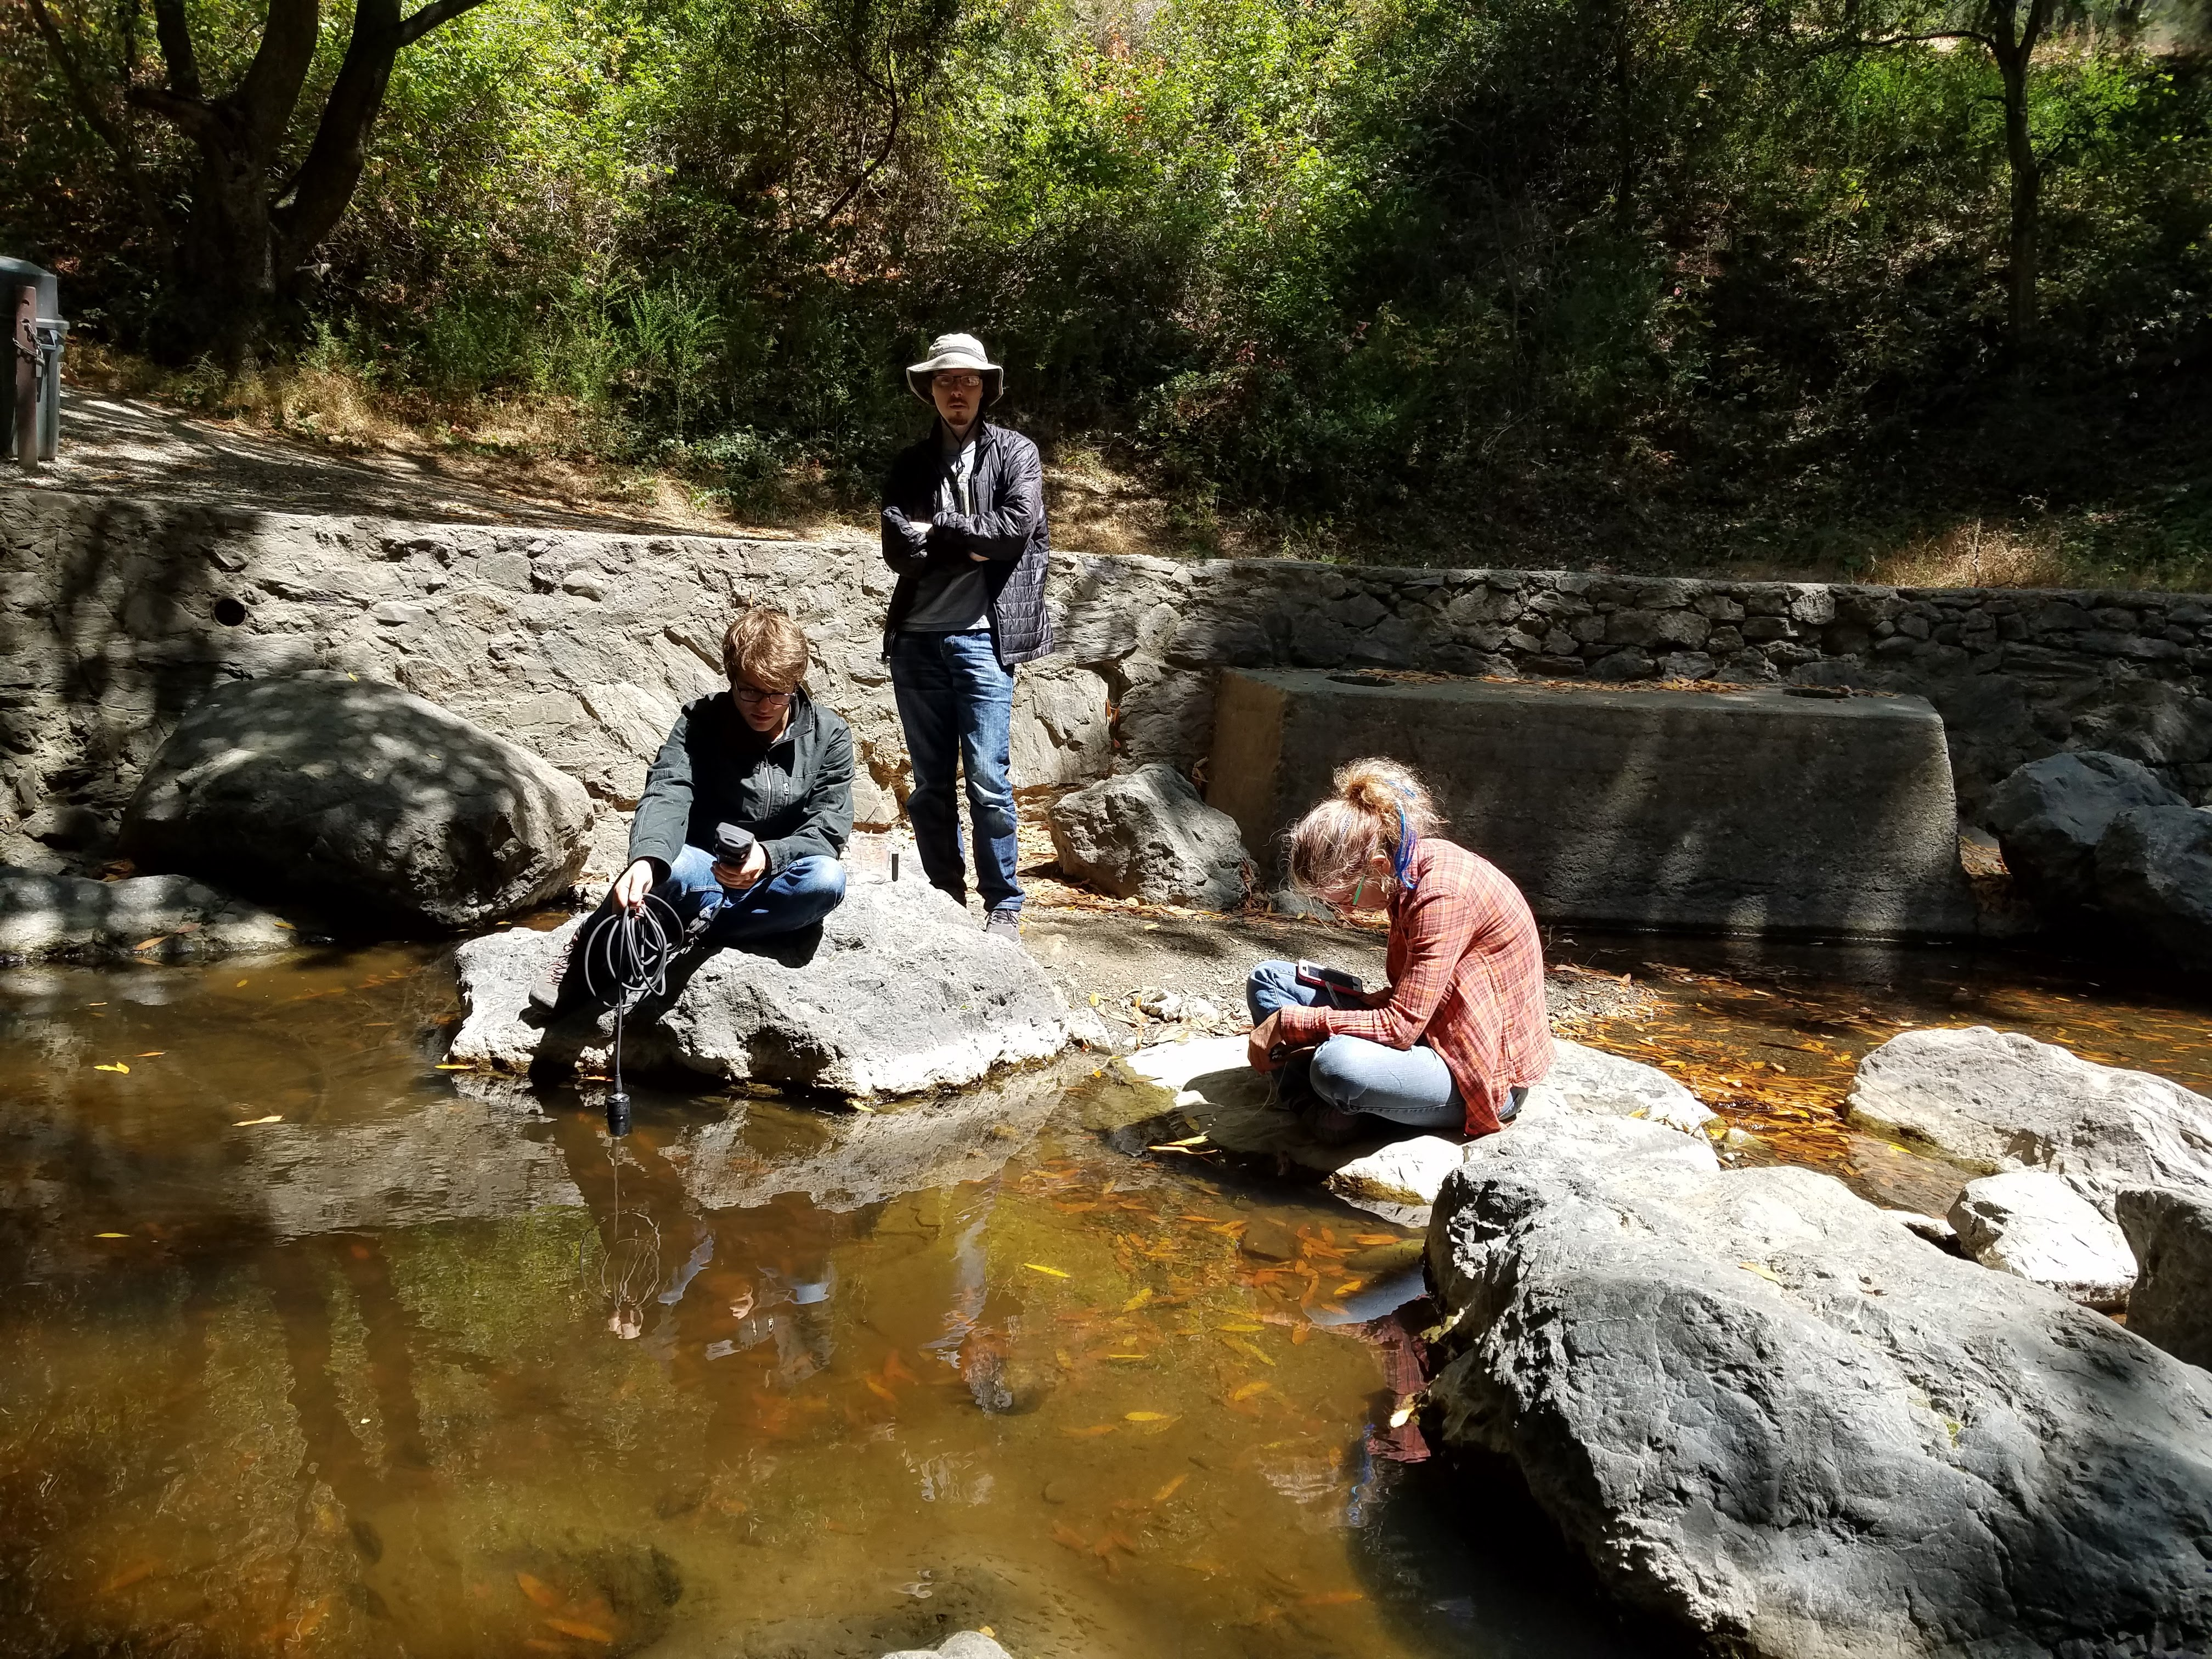 The Watershed Project staff and volunteers monitor Wildcat Creek site